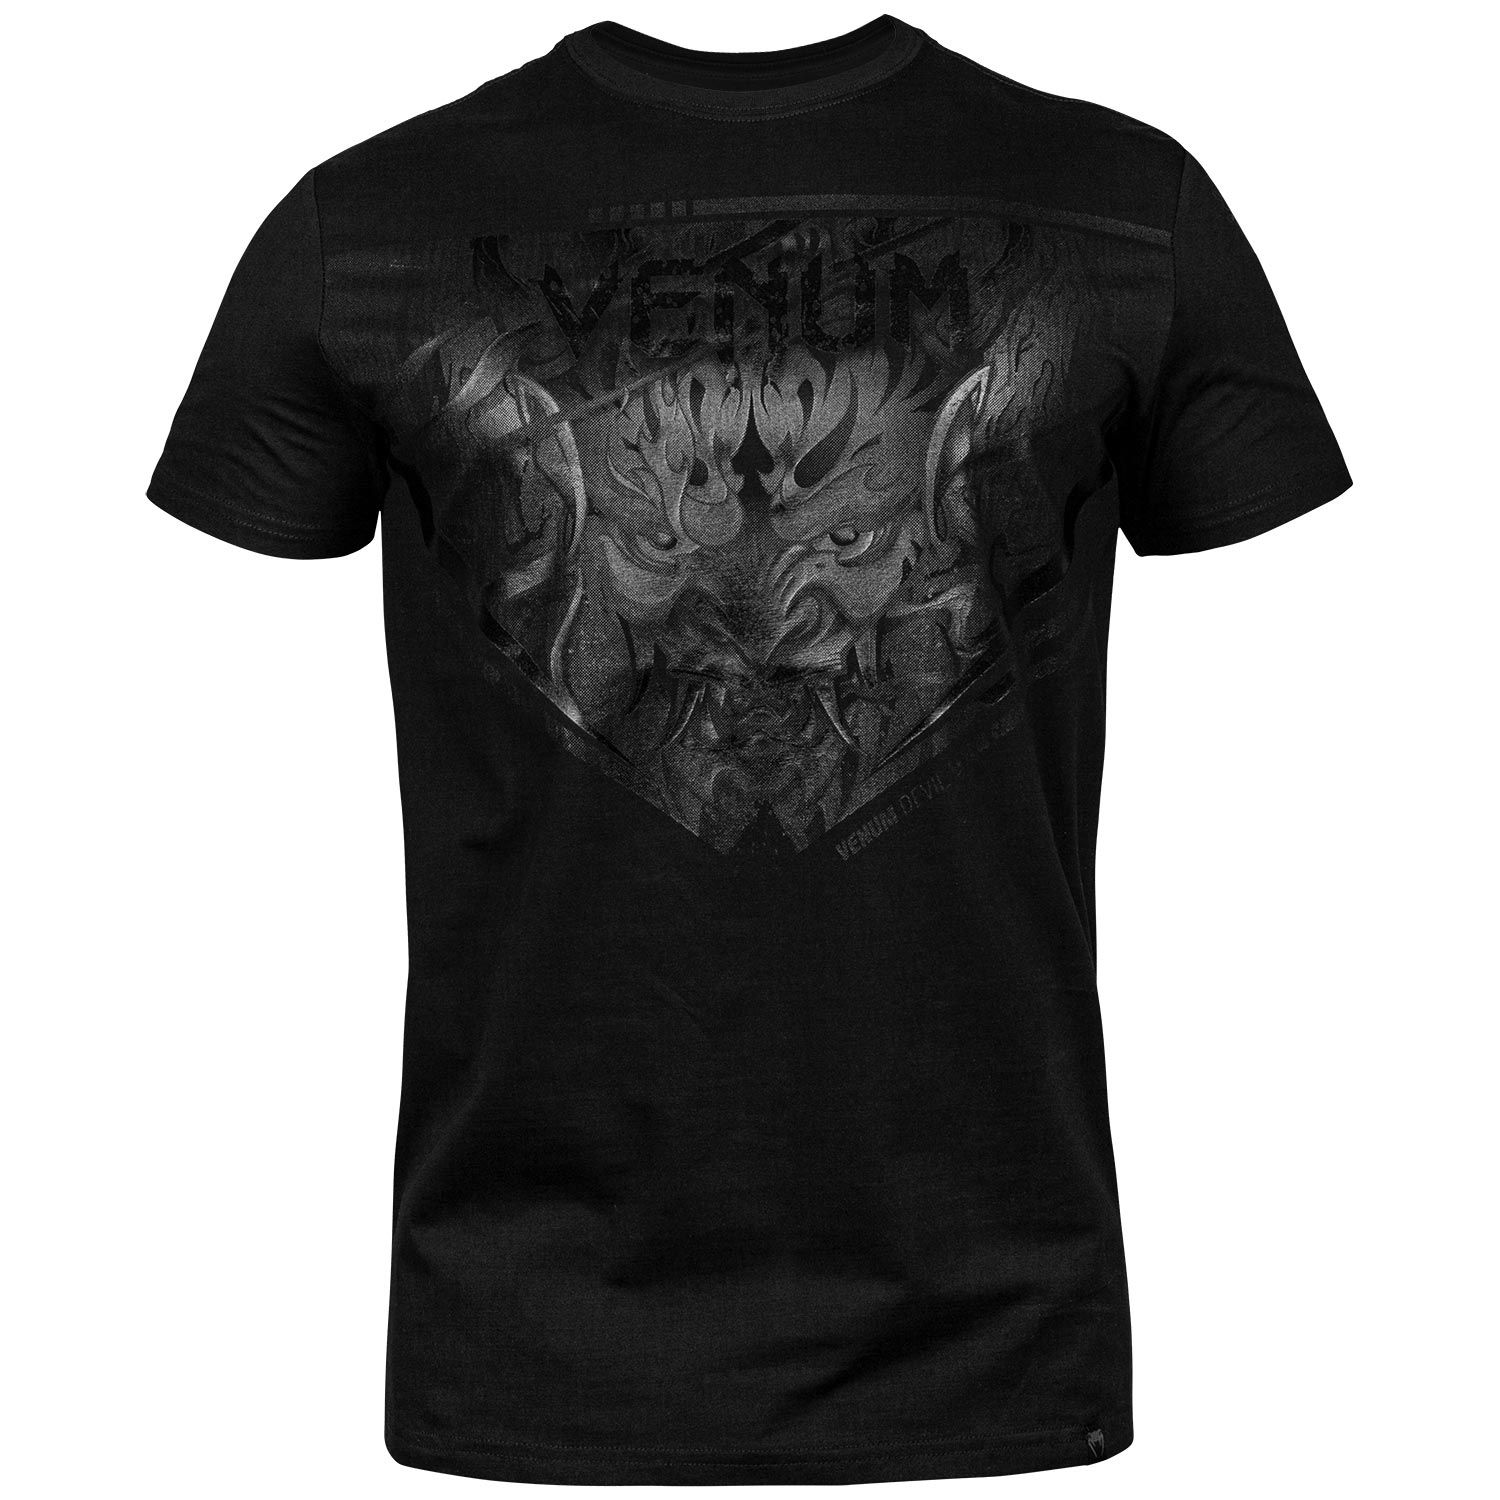 Venum devil shirt